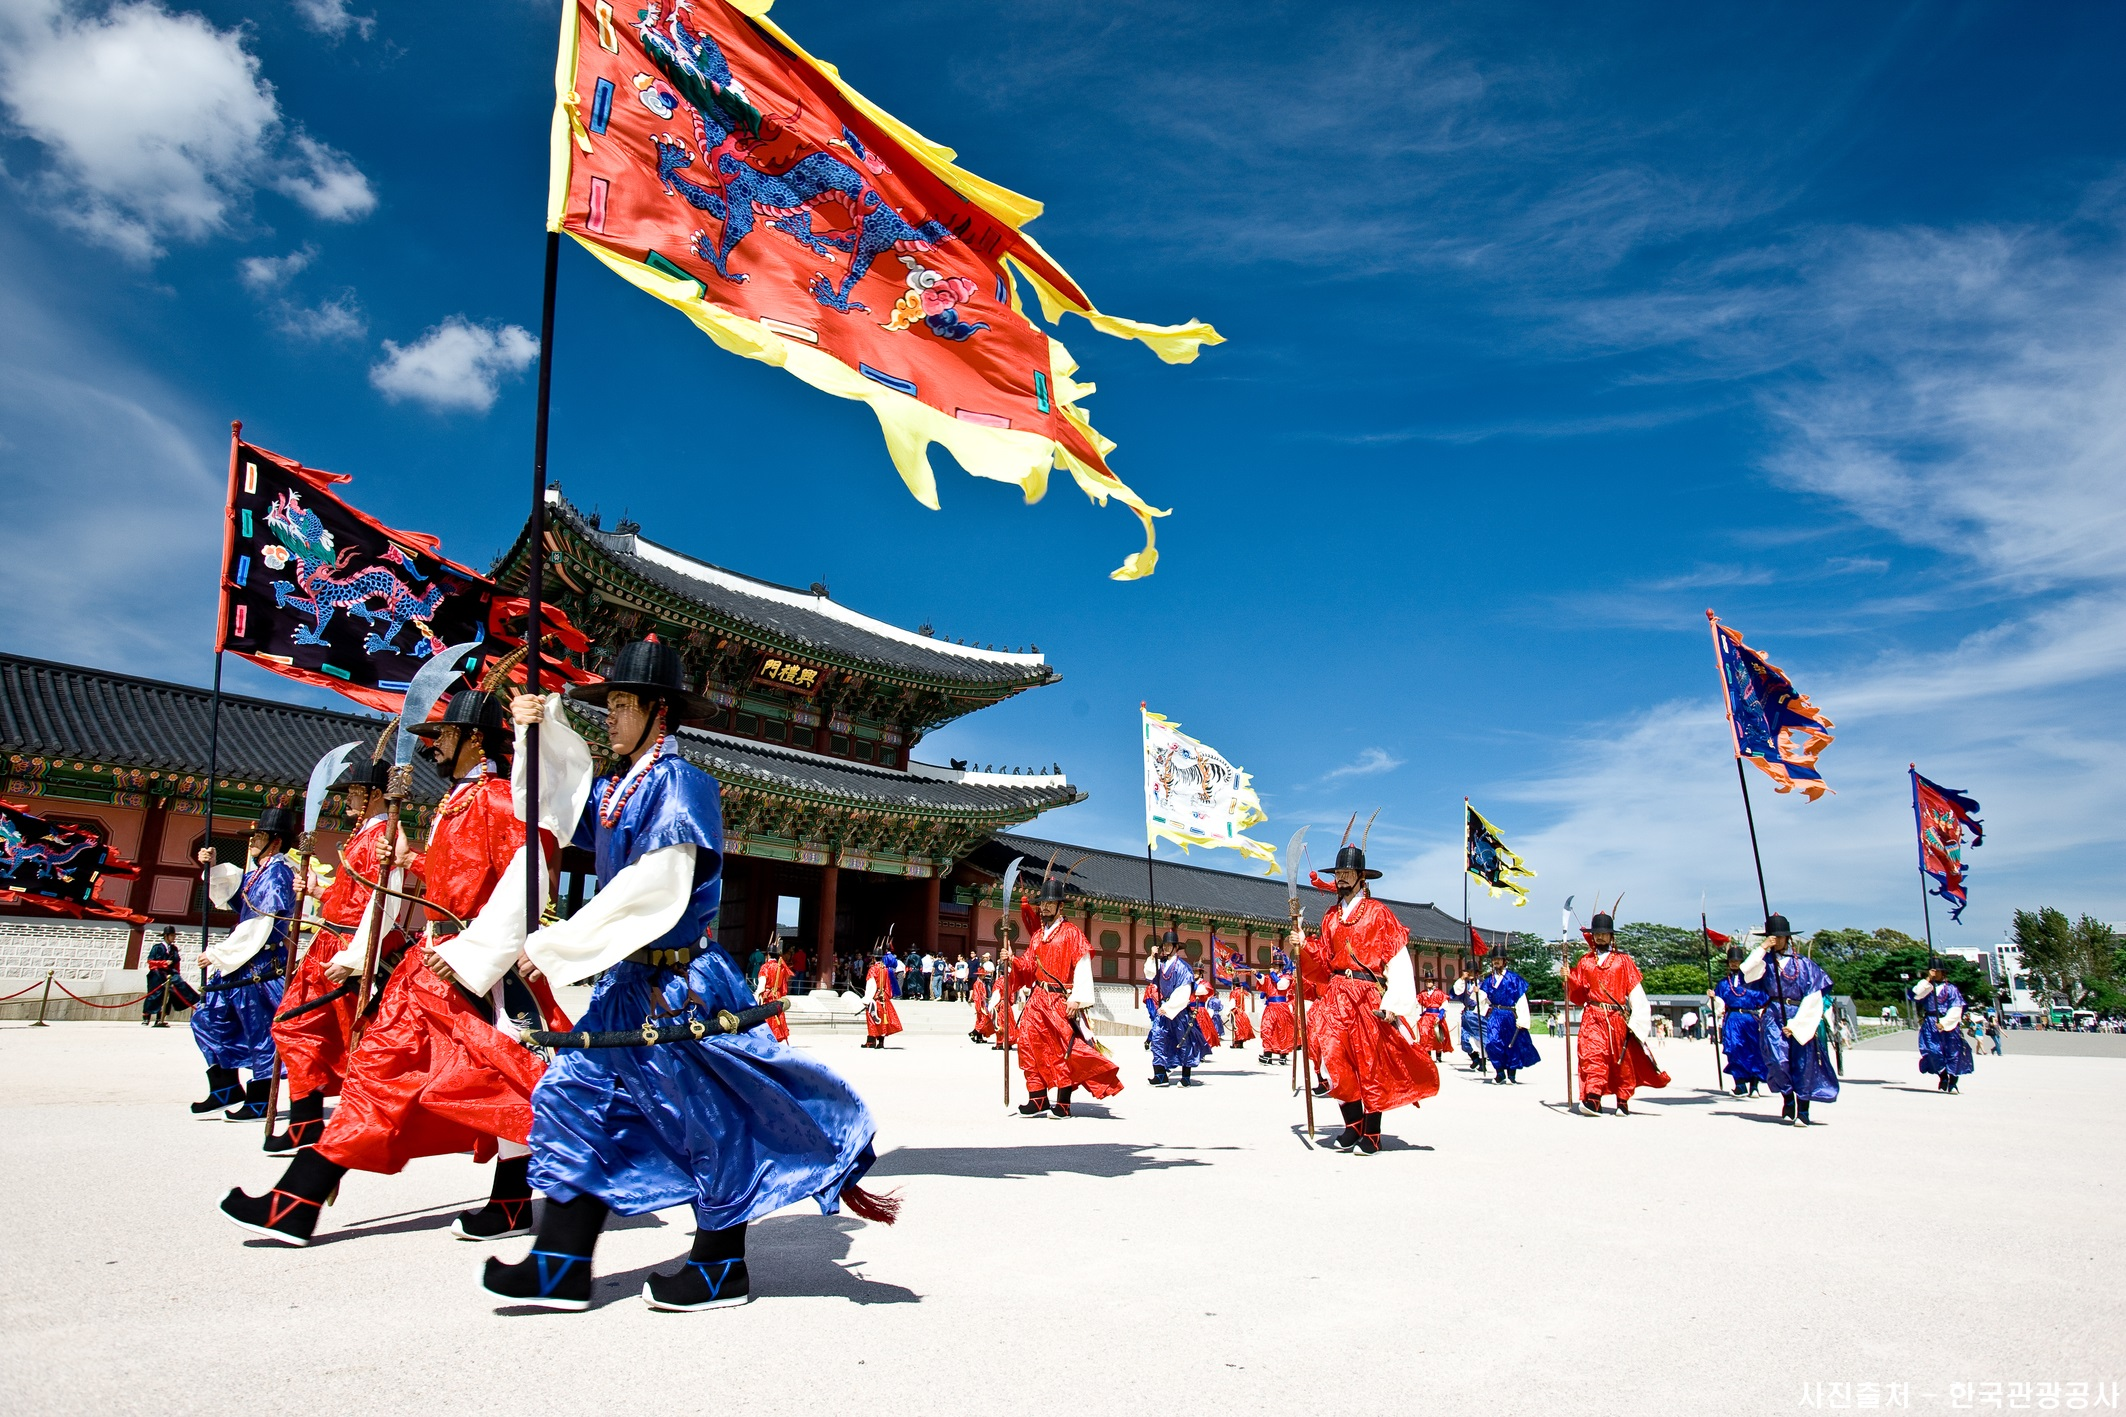 Gyeongbokgung Royal guards